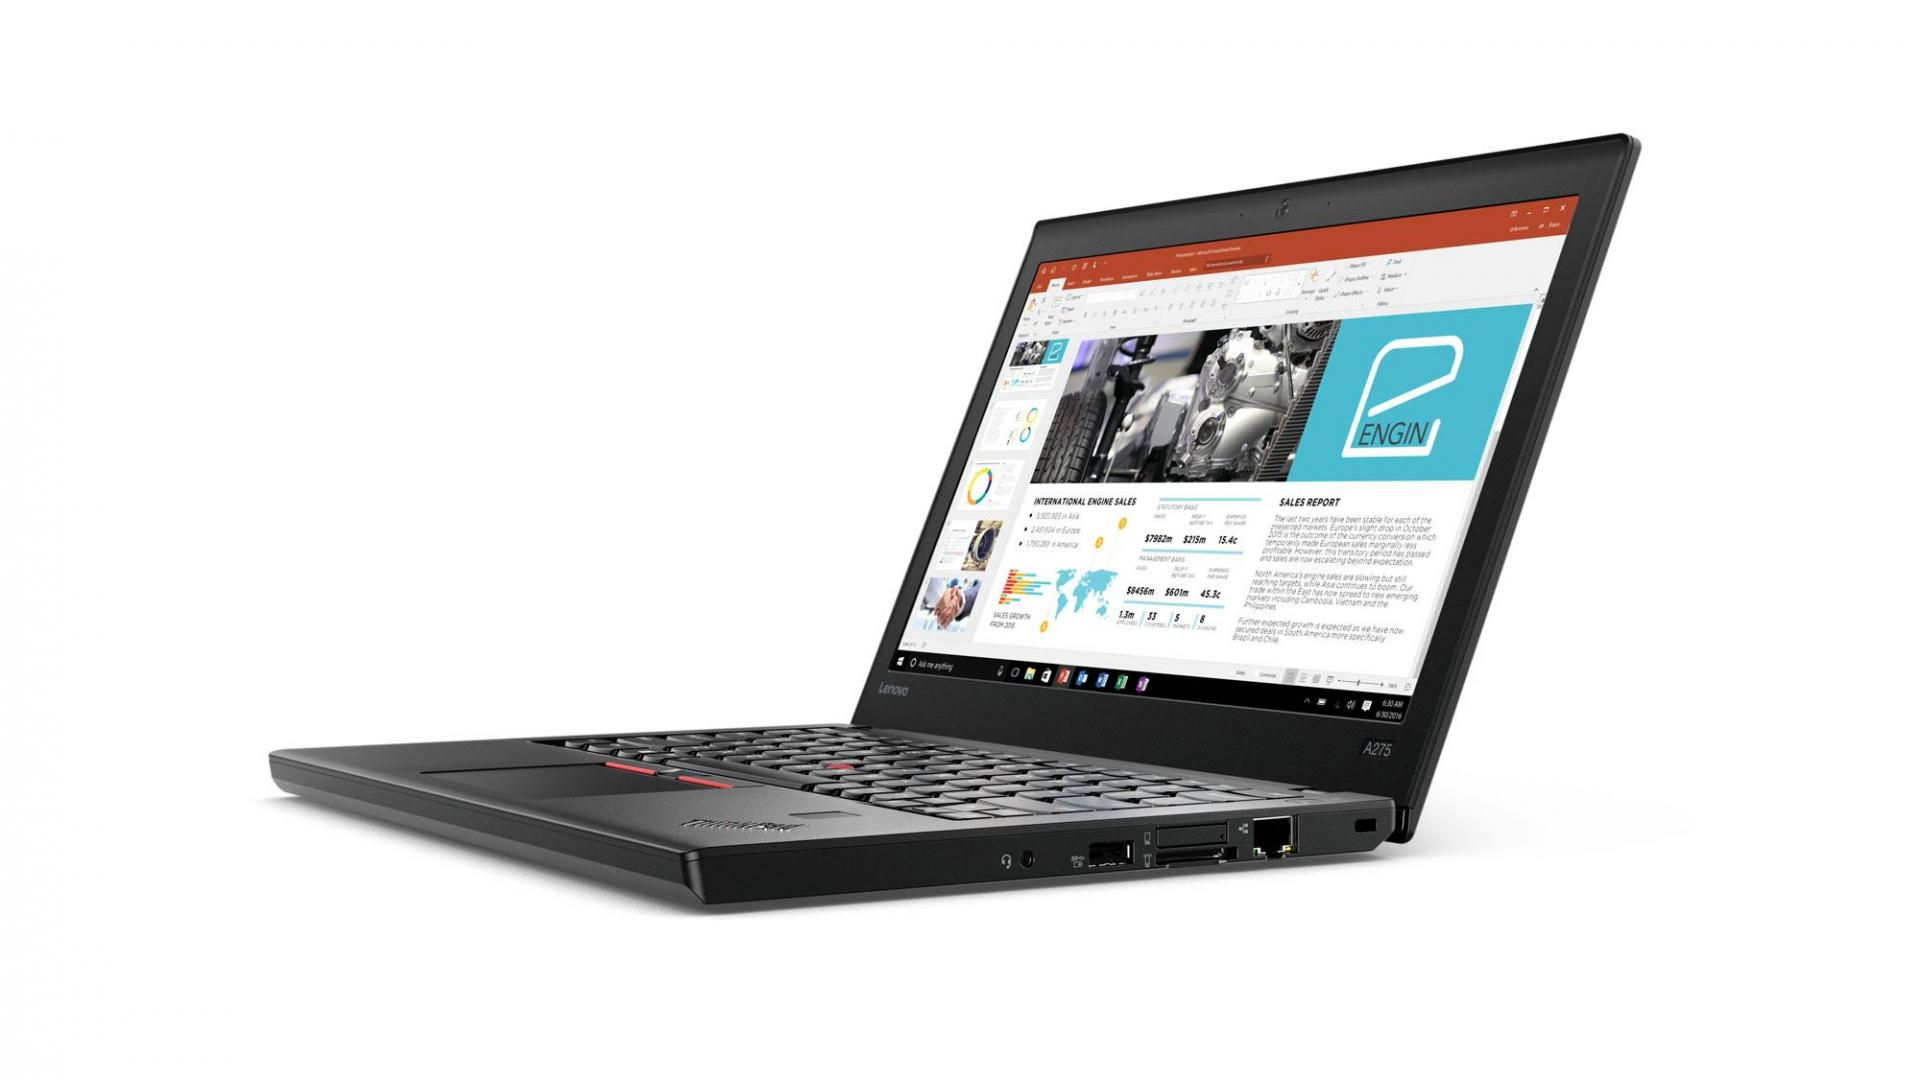 Lenovo представляет: ThinkPad A275, ThinkPad A475, Thinkcentre M715 SFF, Thinkcentre M715 Tower